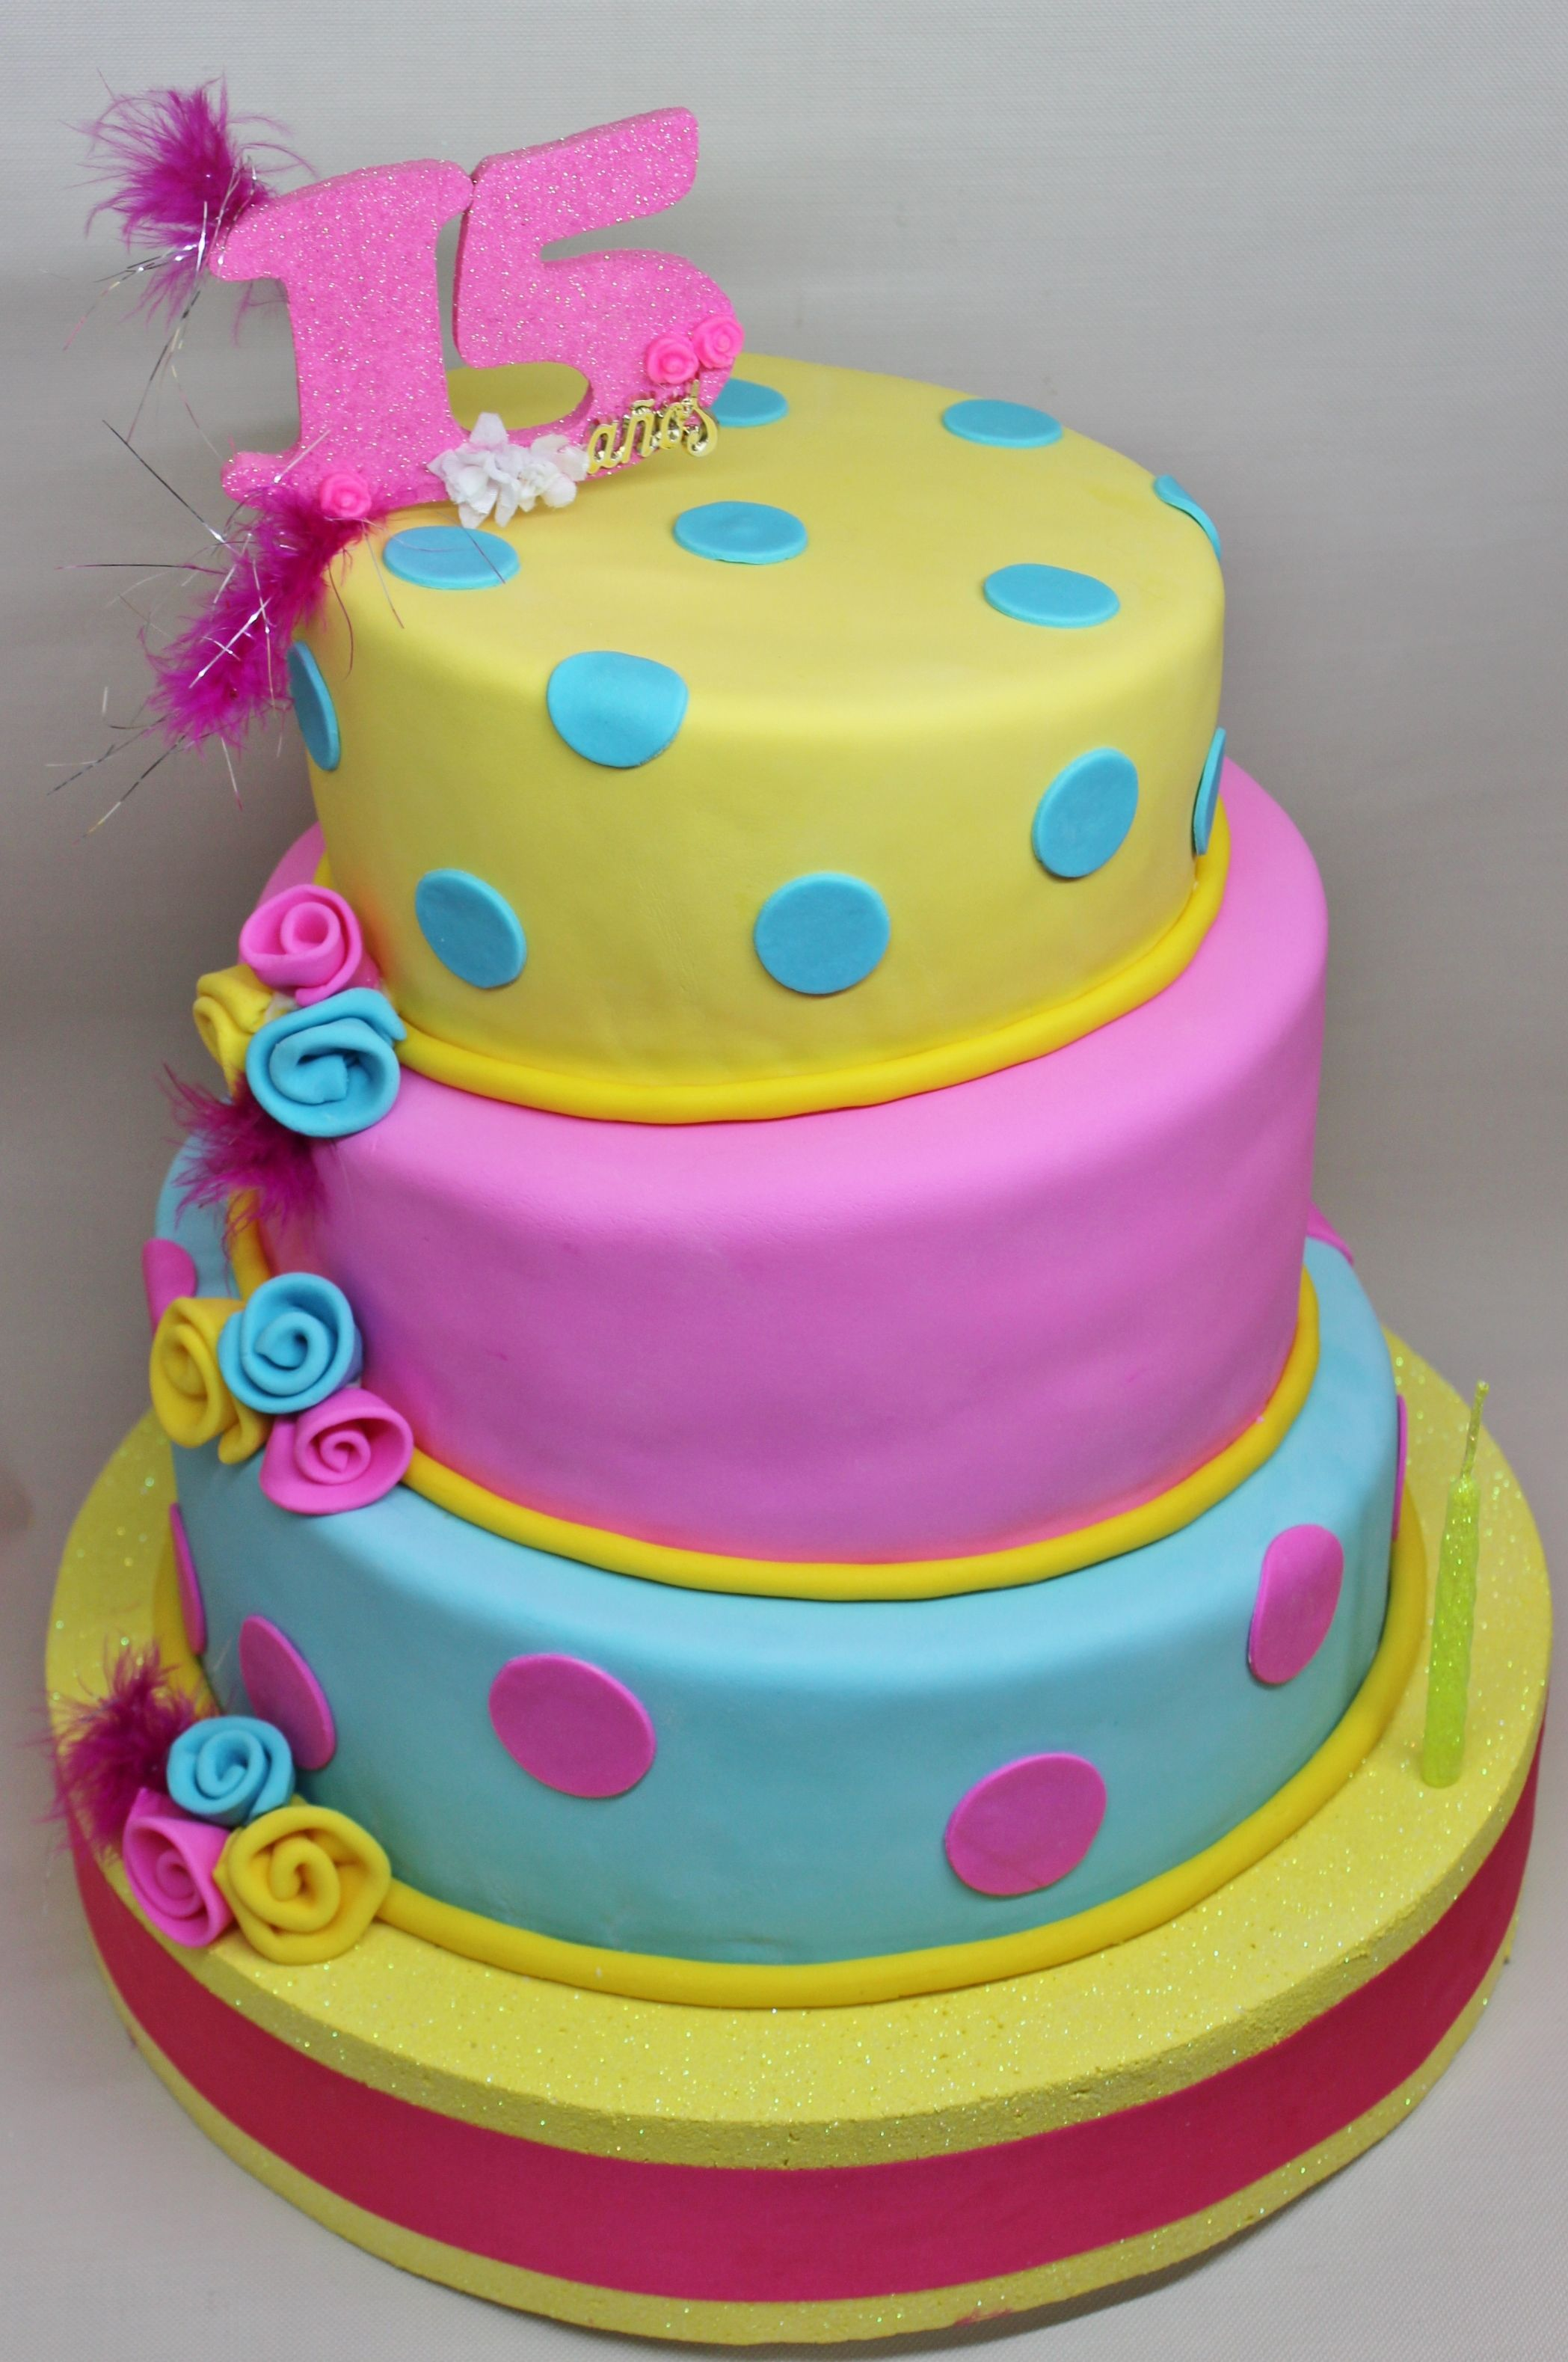 16 Sweet Cake Topsy Turvy by Violeta Glace